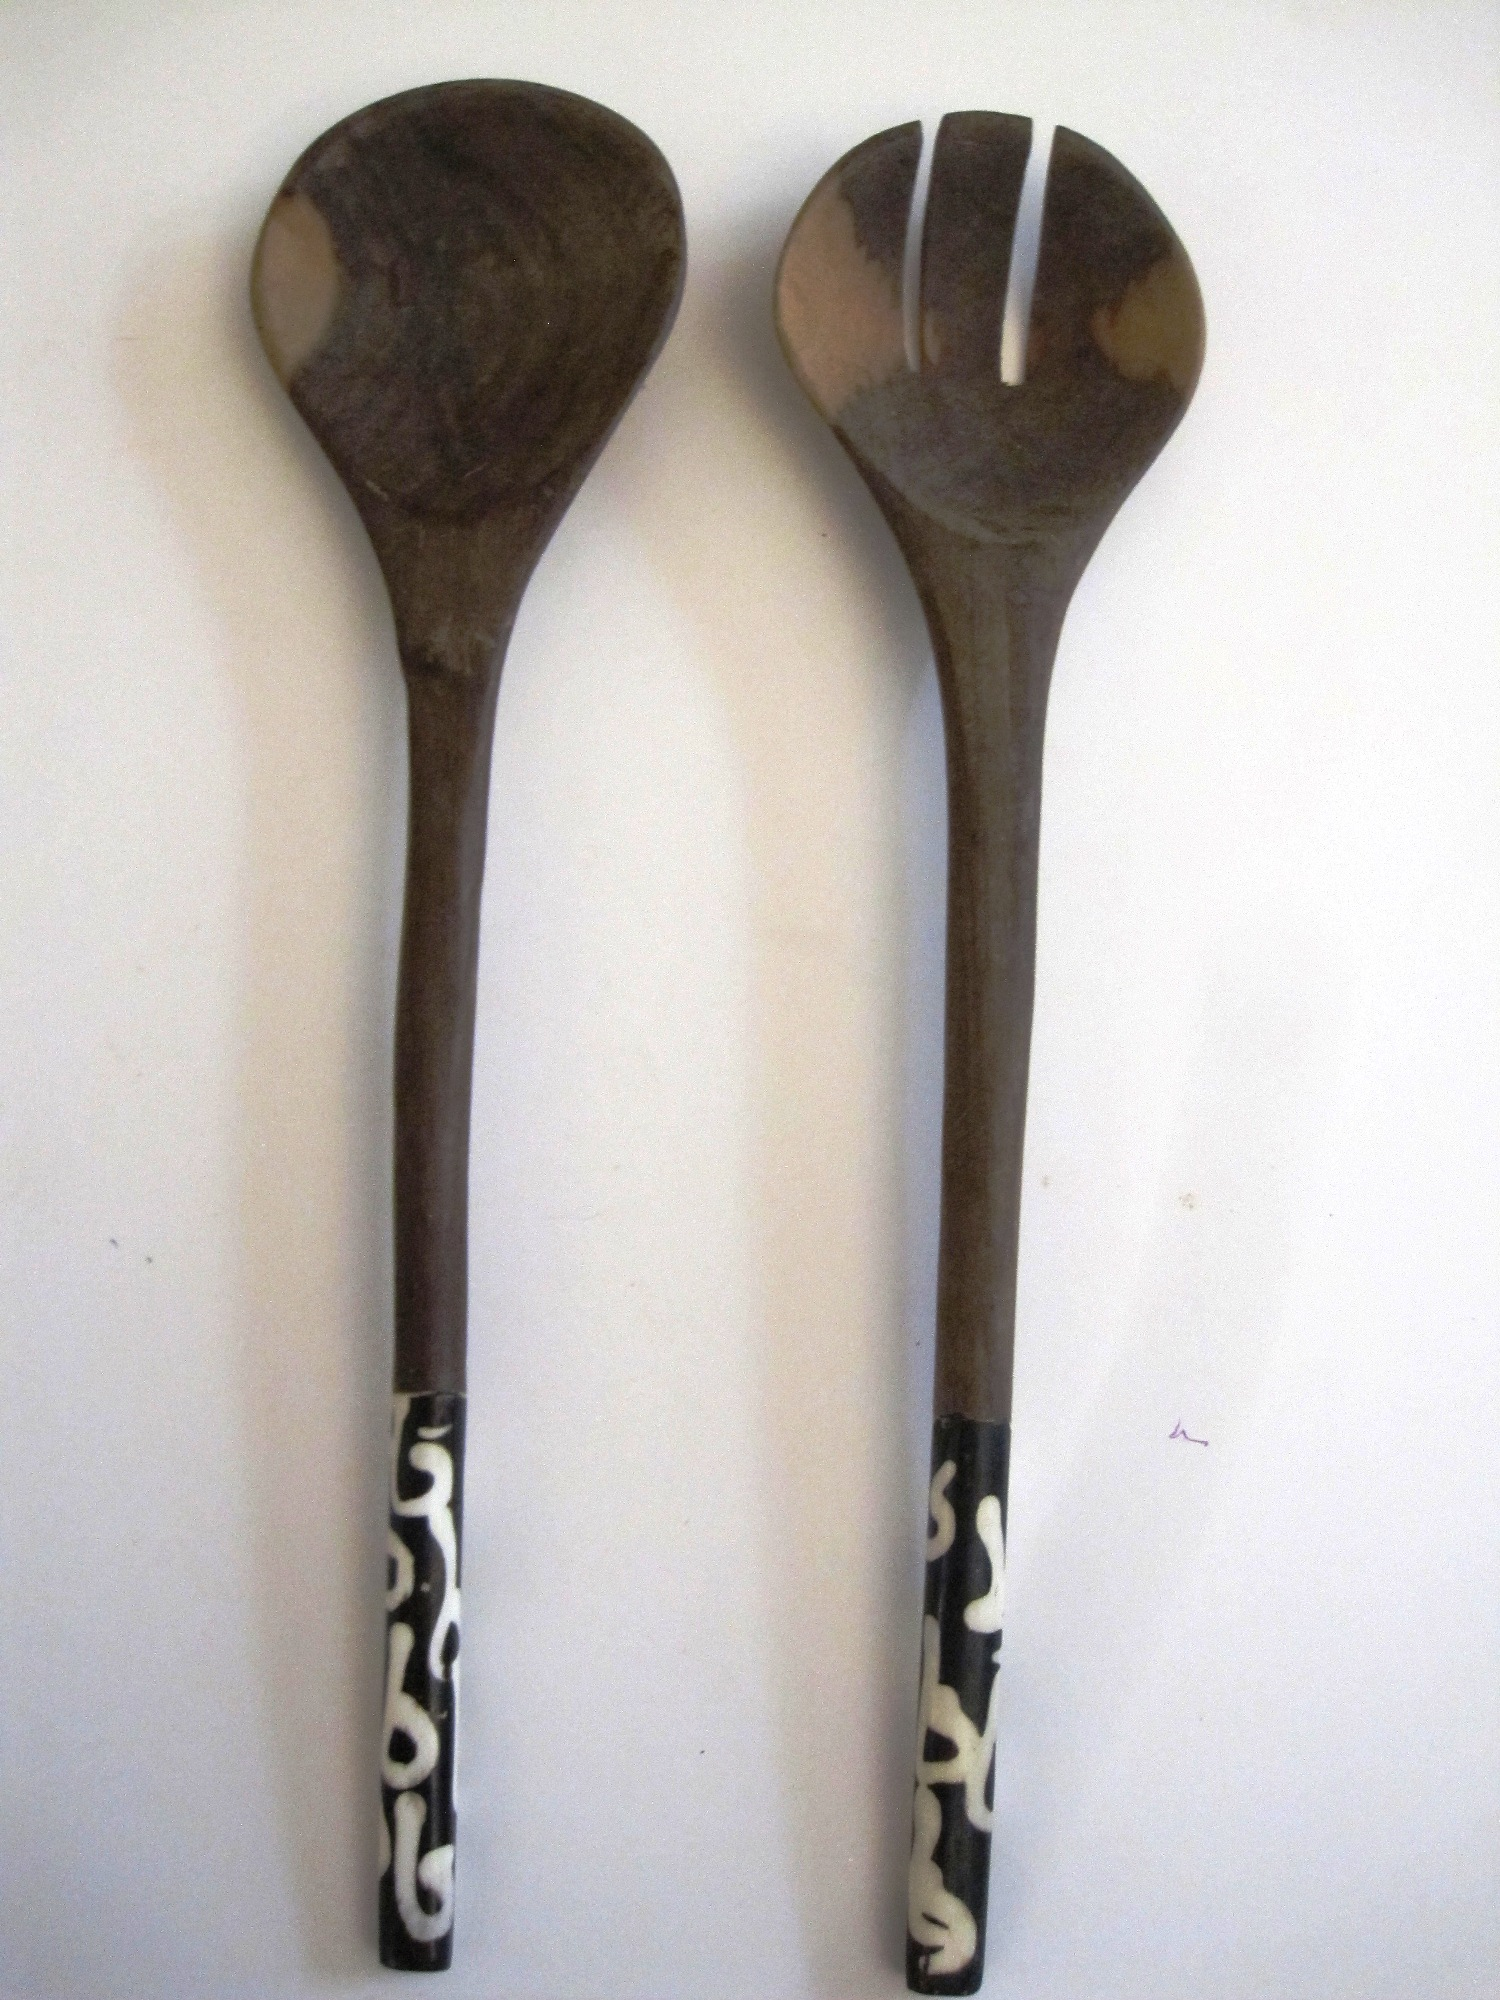 Bone/Wood Salad Server Server Set #006